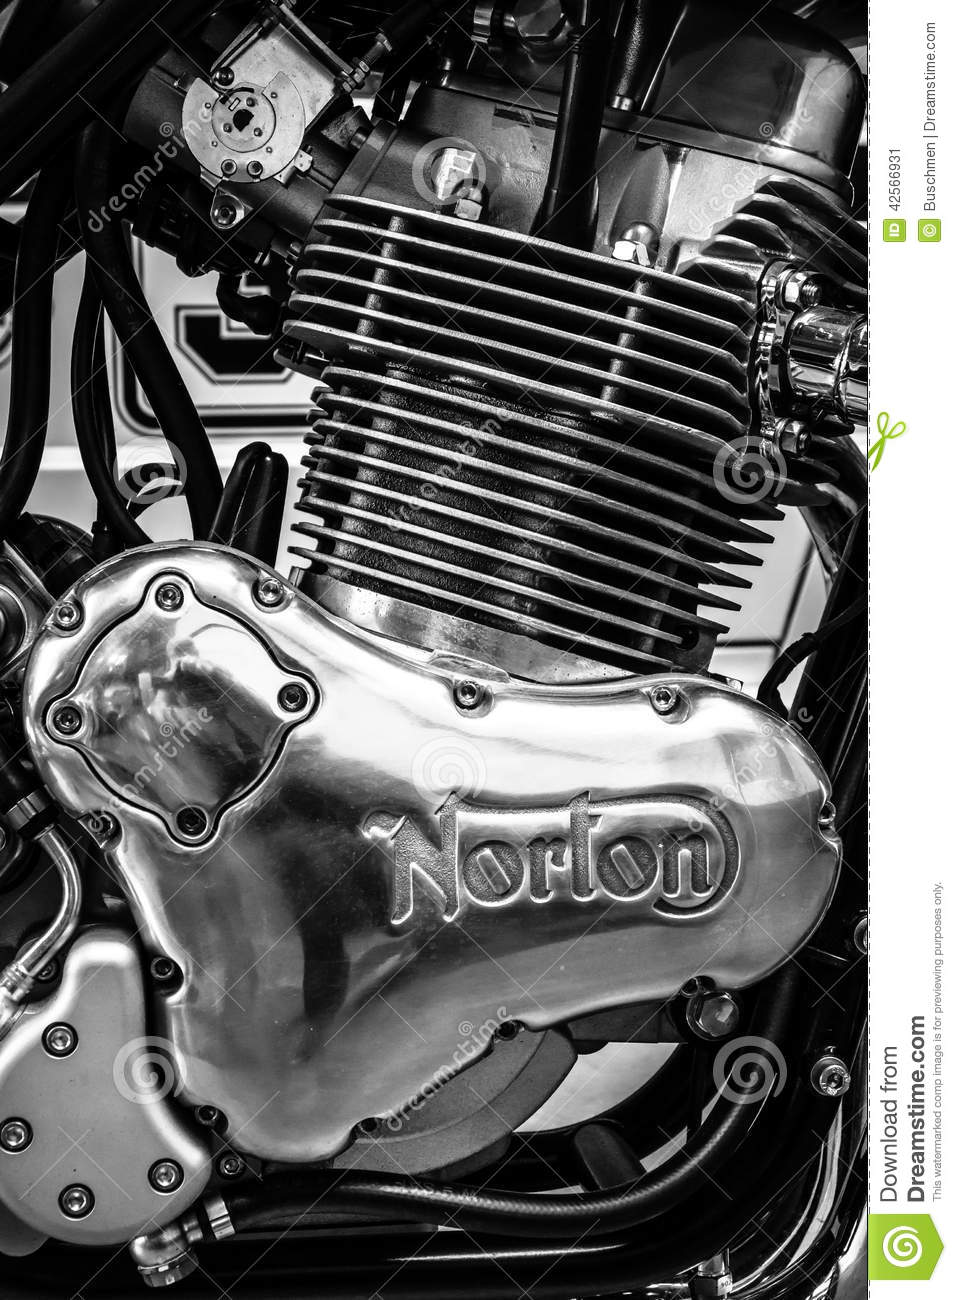 3 1 L Engine Diagram Engine Of A Sports Motorcycle Norton Commando 961 Cafe